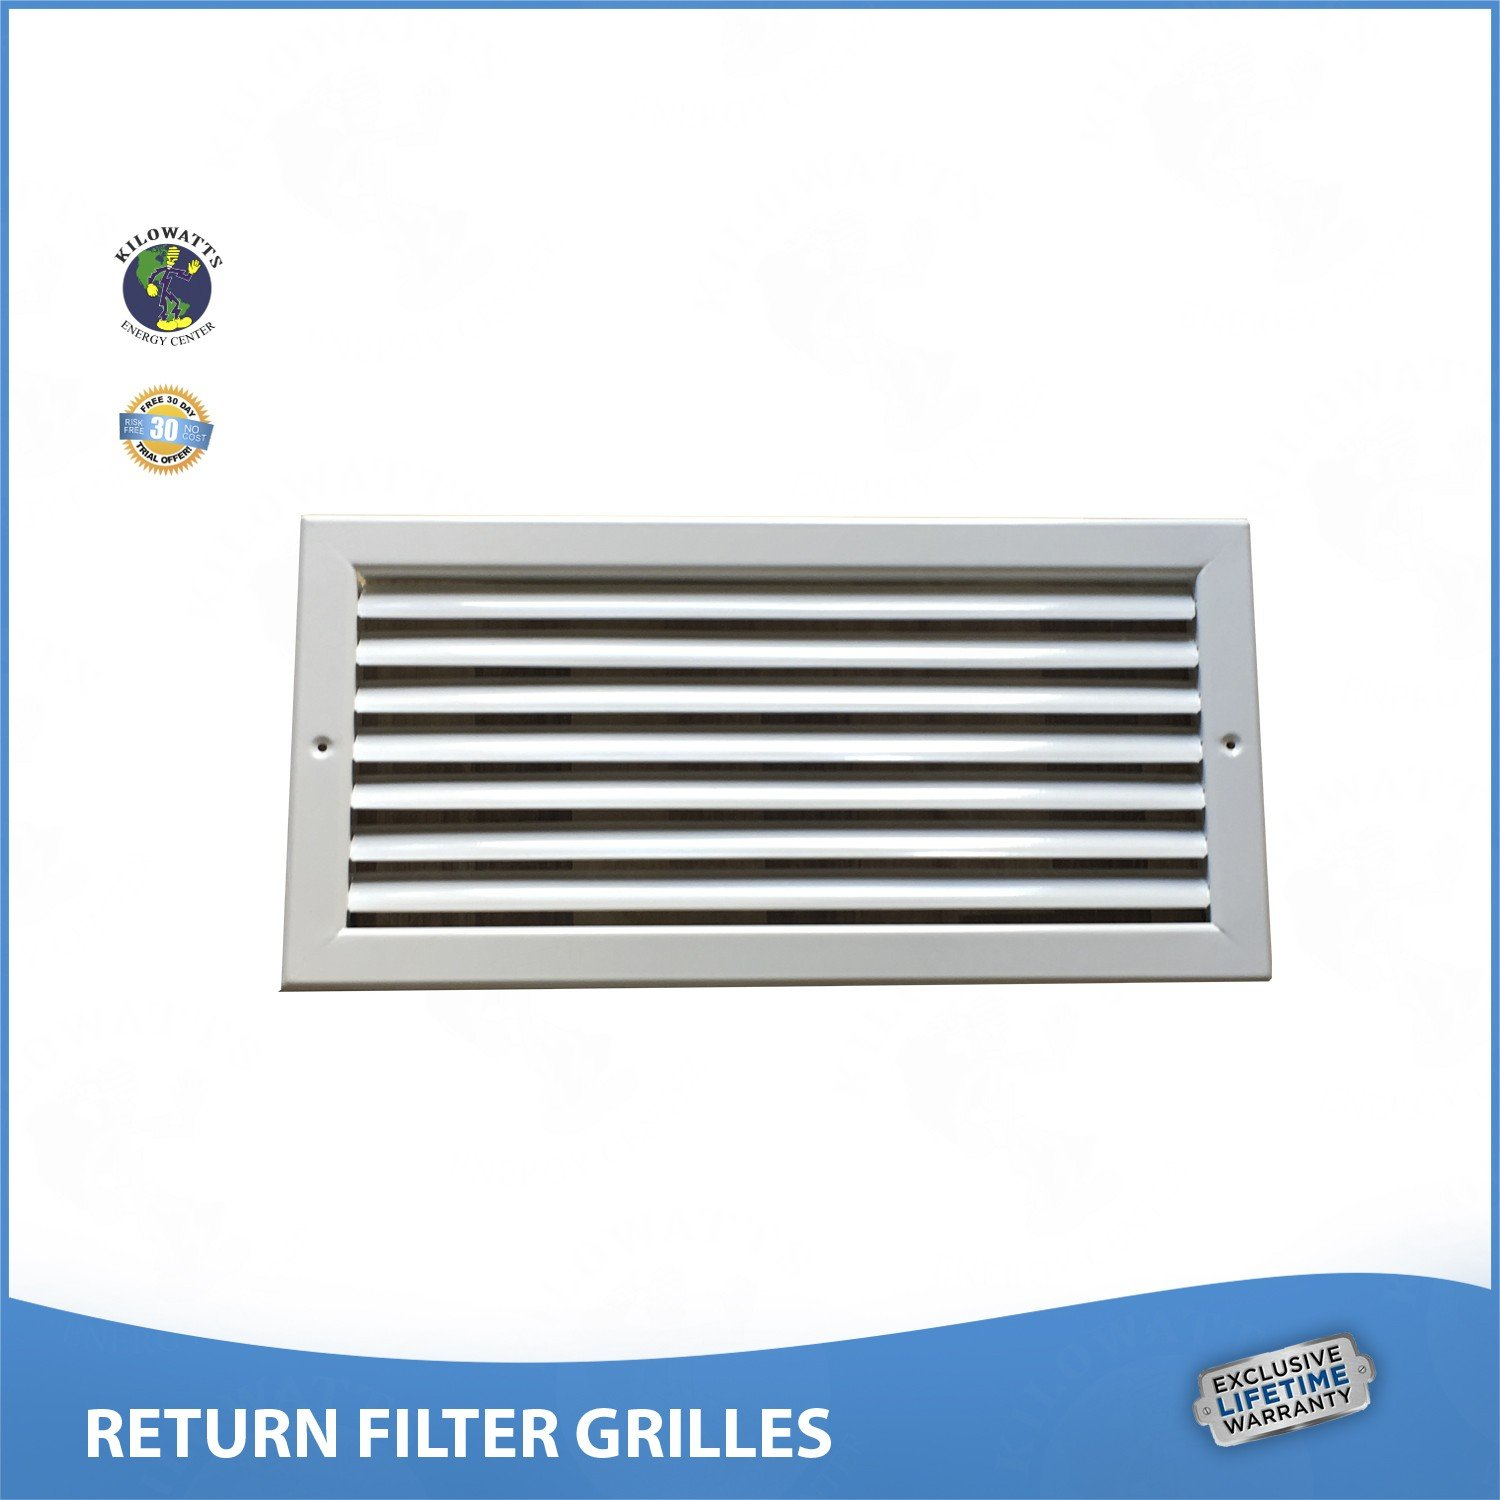 28''w x 6''h RETURN FILTER GRILLE - Easy Air Flow. by Kilowatts Energy Center